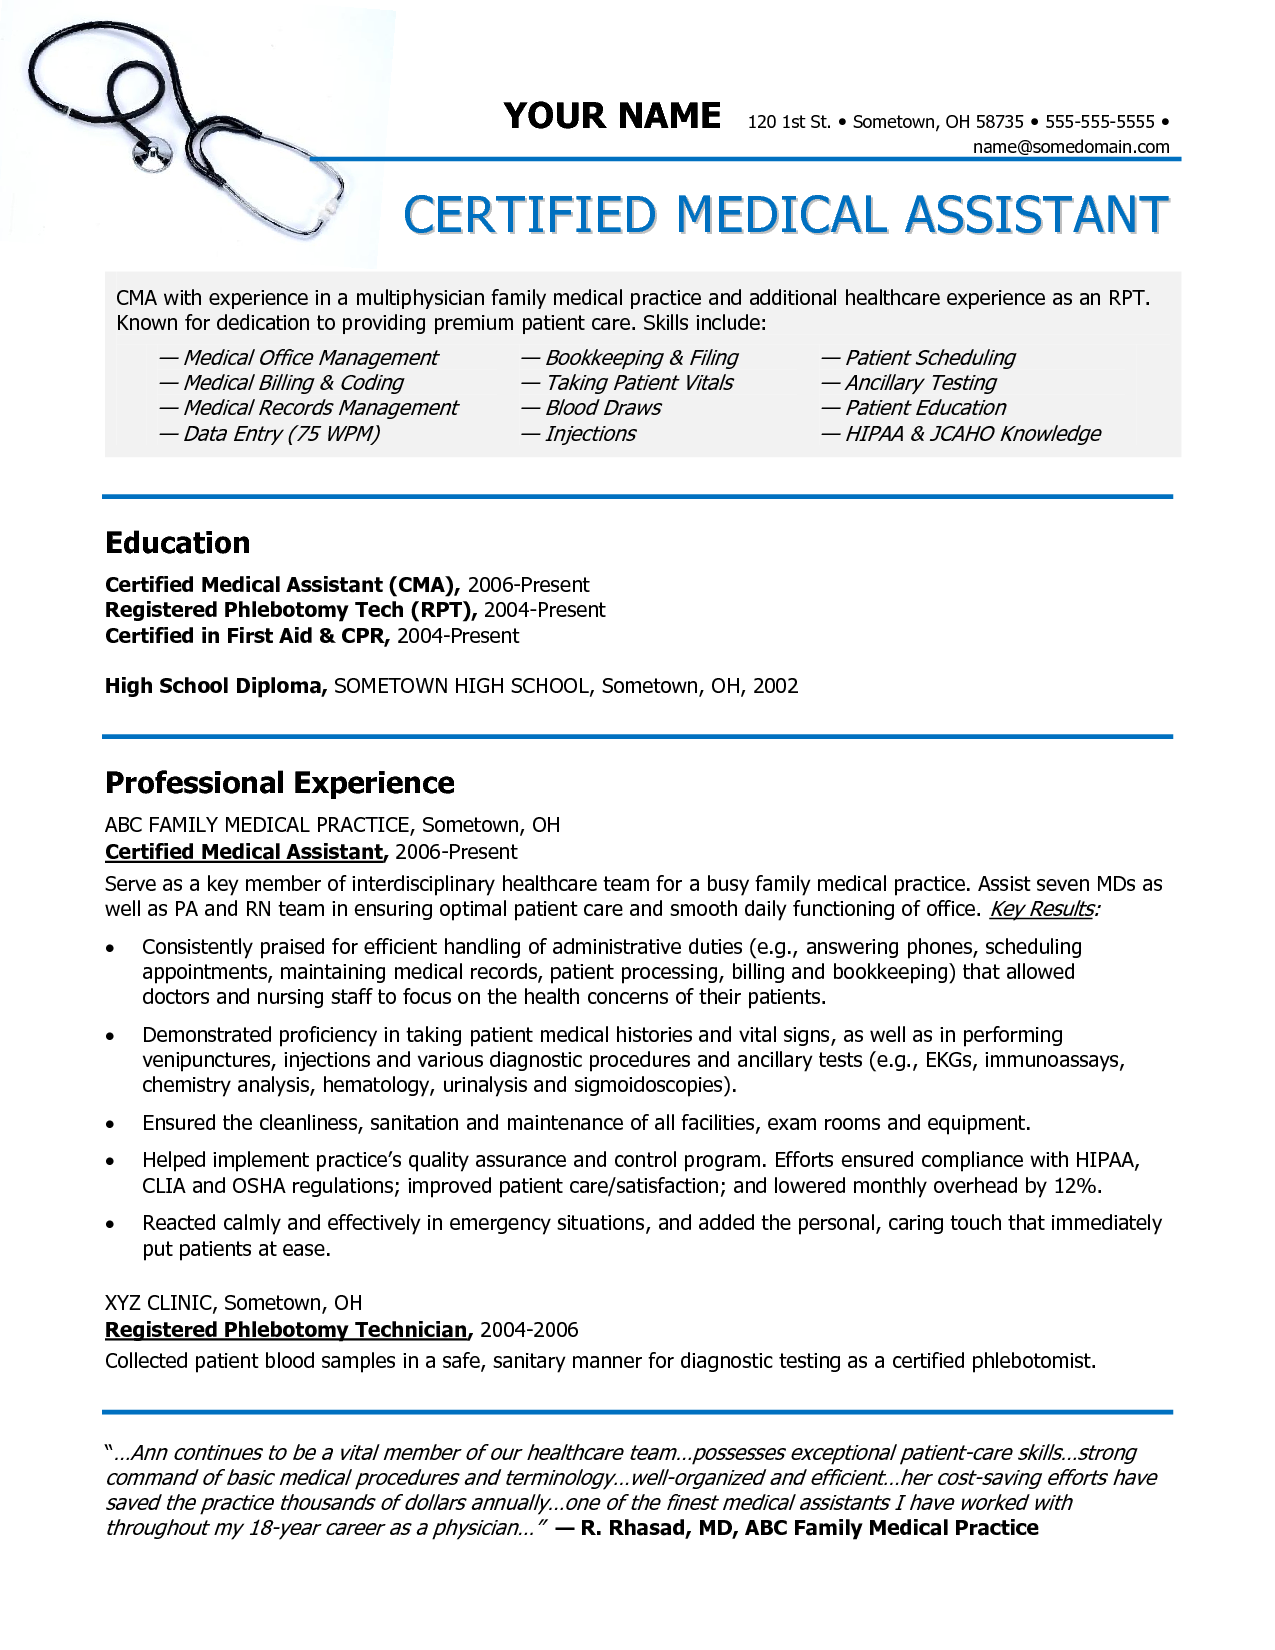 Medical Assistant Resume Samples Enchanting Medical Assistant Resume Entry Level Examples 18 Medical Assistant